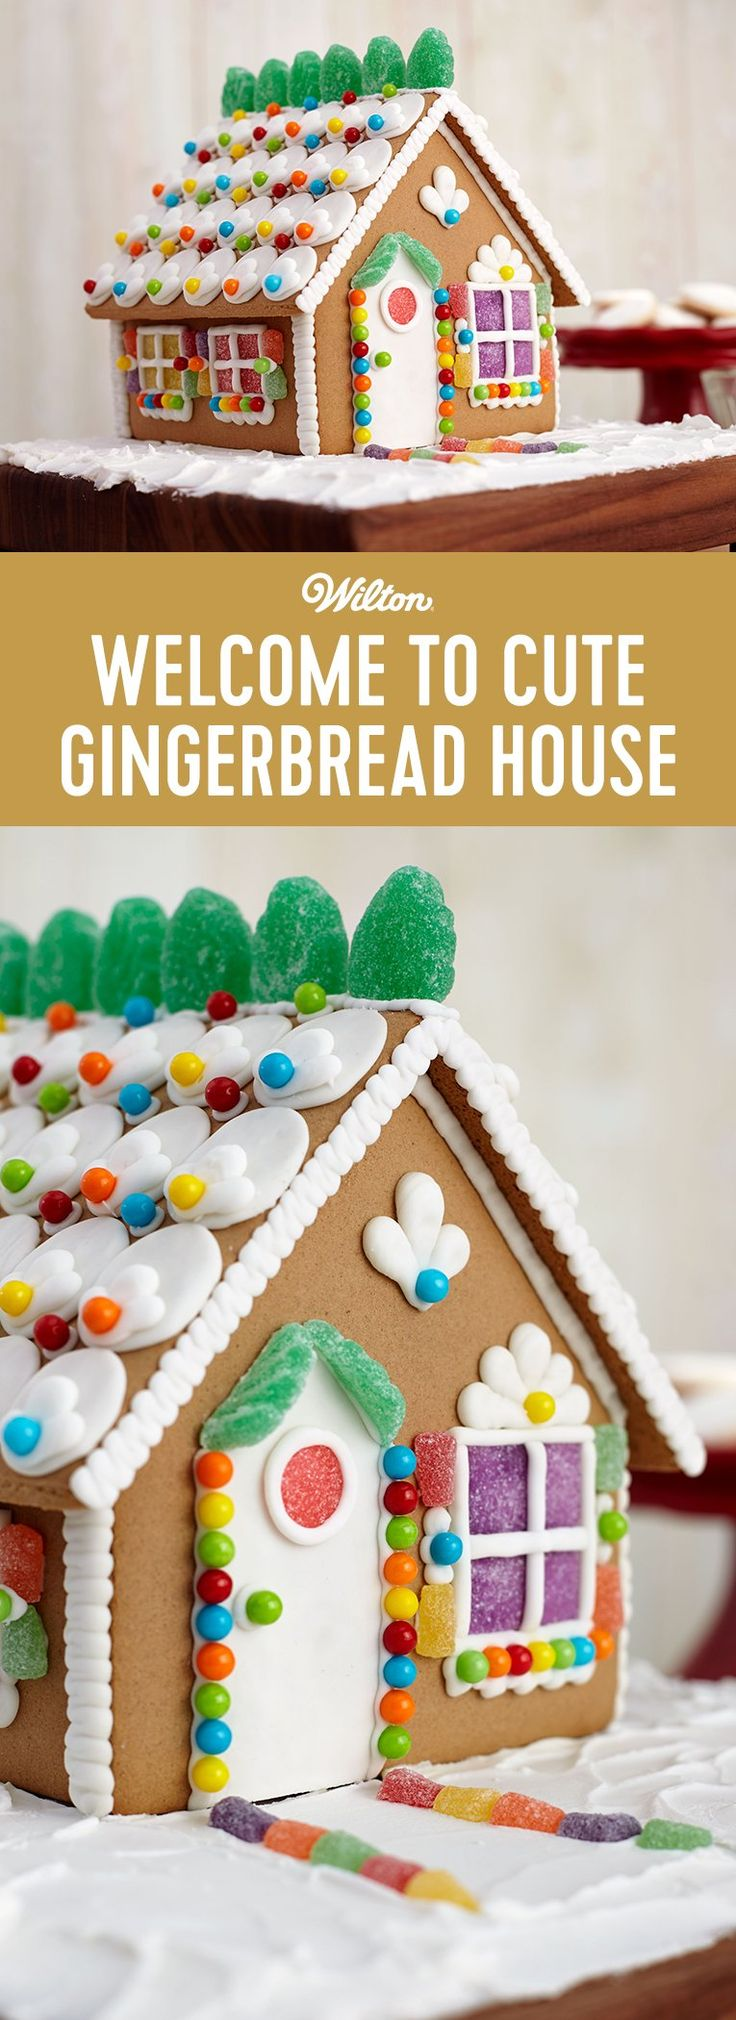 Cute Gingerbread House - Family and friends will have fun as you gather together to celebrate the holidays decorating this cute gingerbread house!